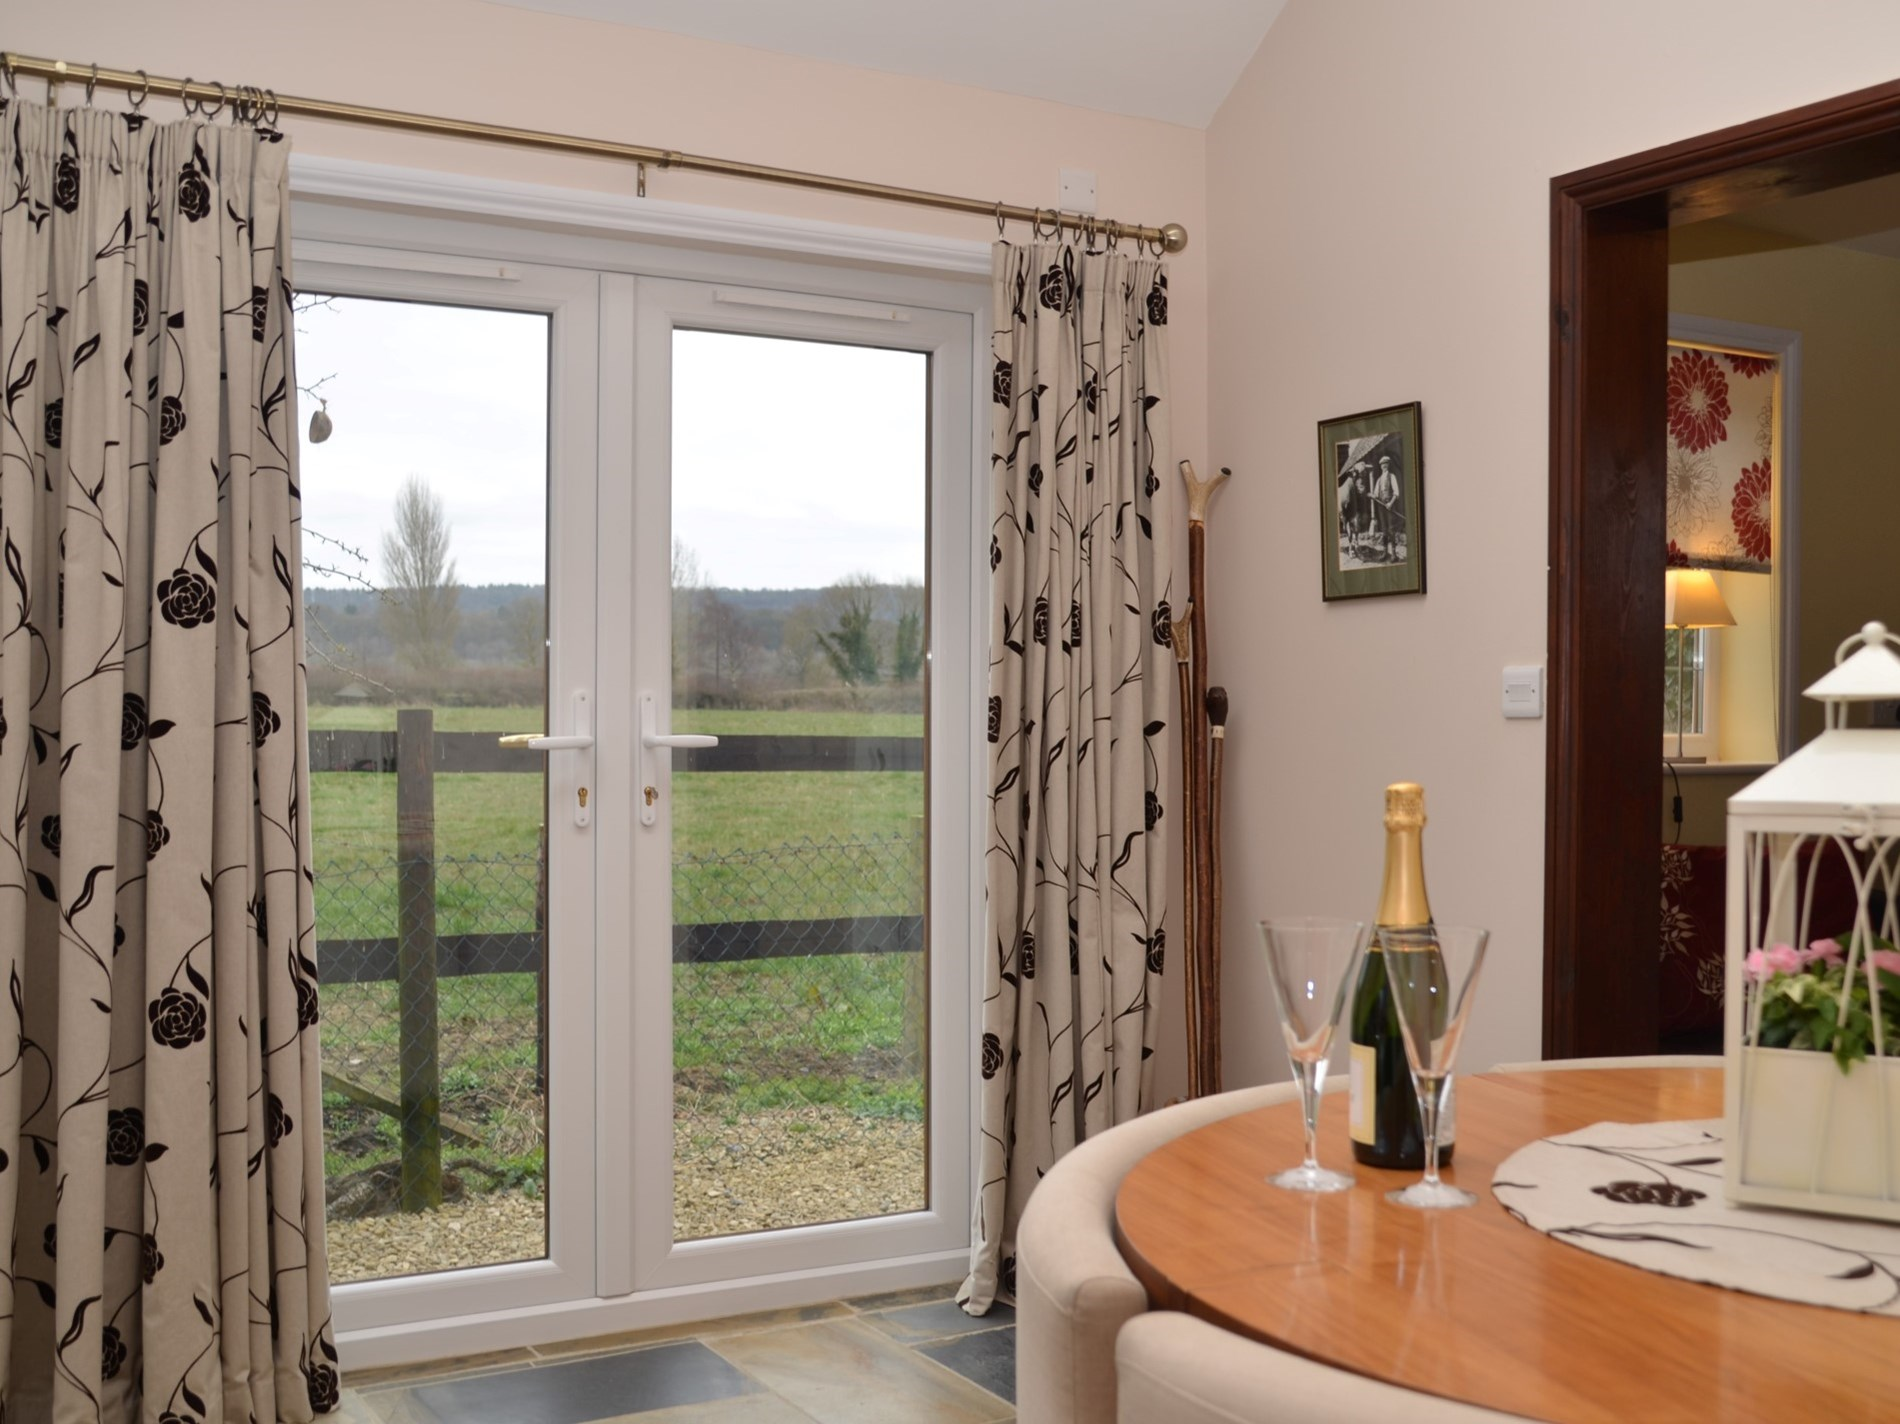 Views out of the french doors